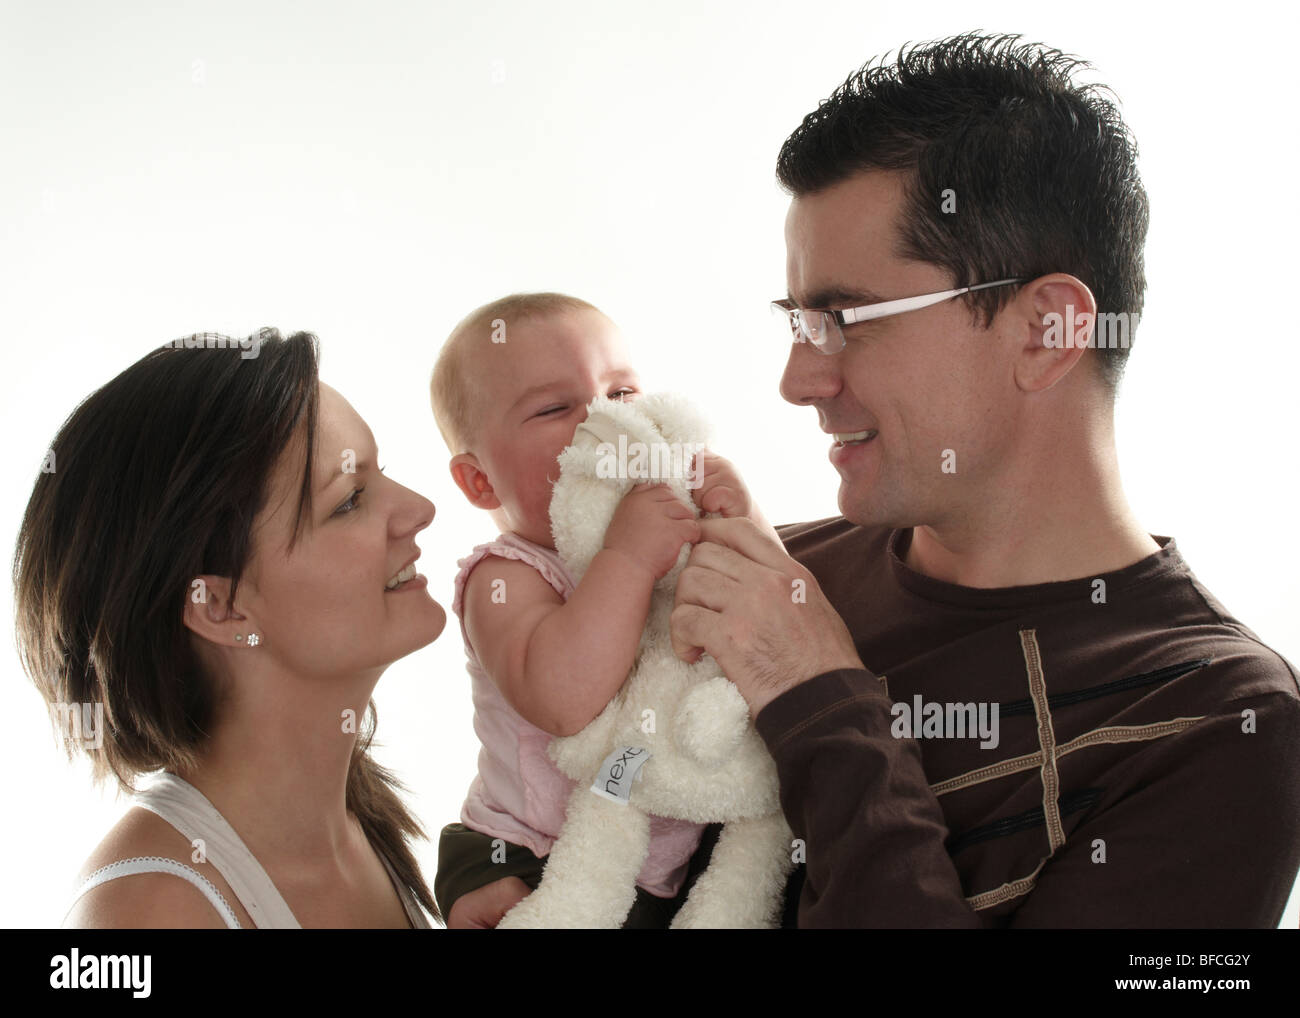 family portrait of mum, dad and baby girl Stock Photo